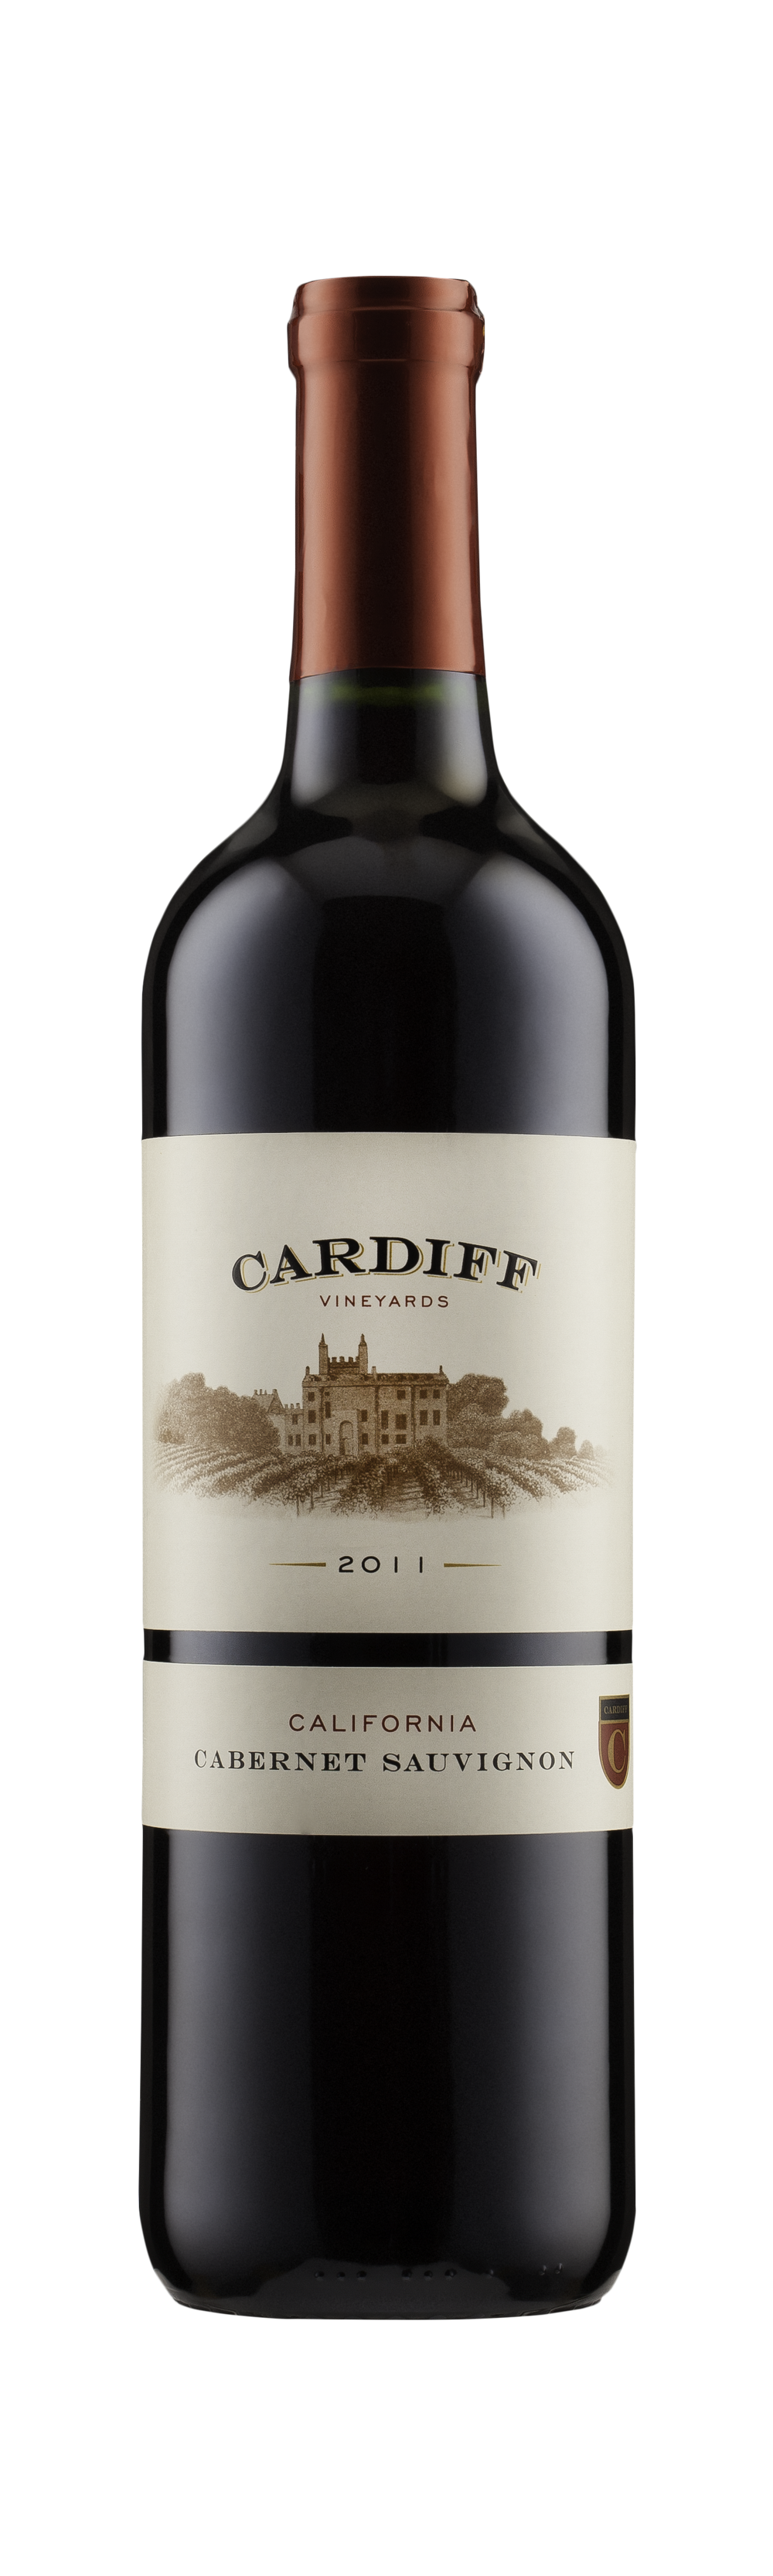 Cardiff Cabernet Bottle Shot.png